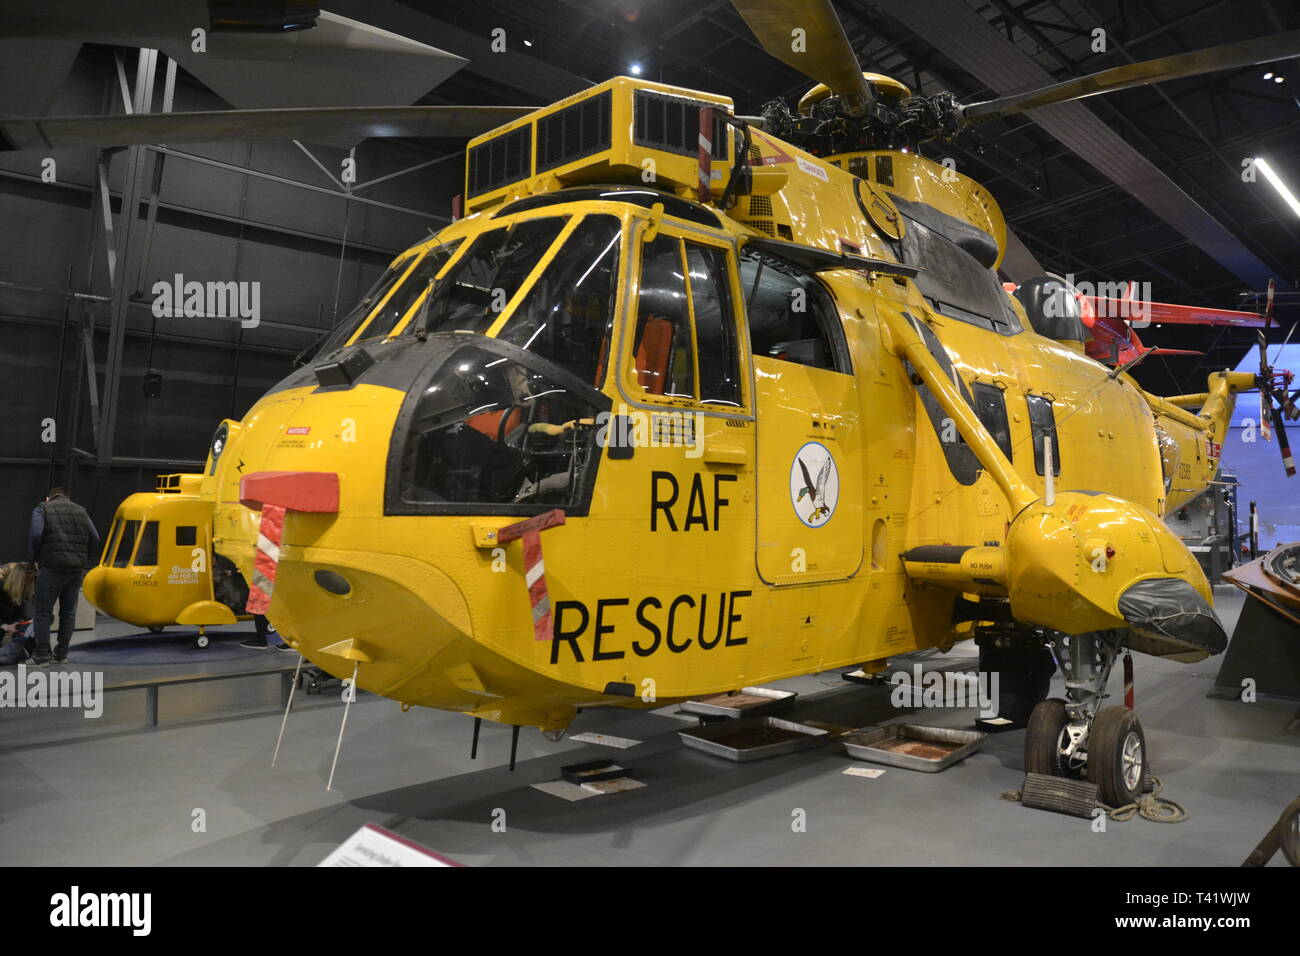 Westland Sea King HMR3 Rescue Helicopter 1962-1978 at the RAF Museum, London, UK - Stock Image